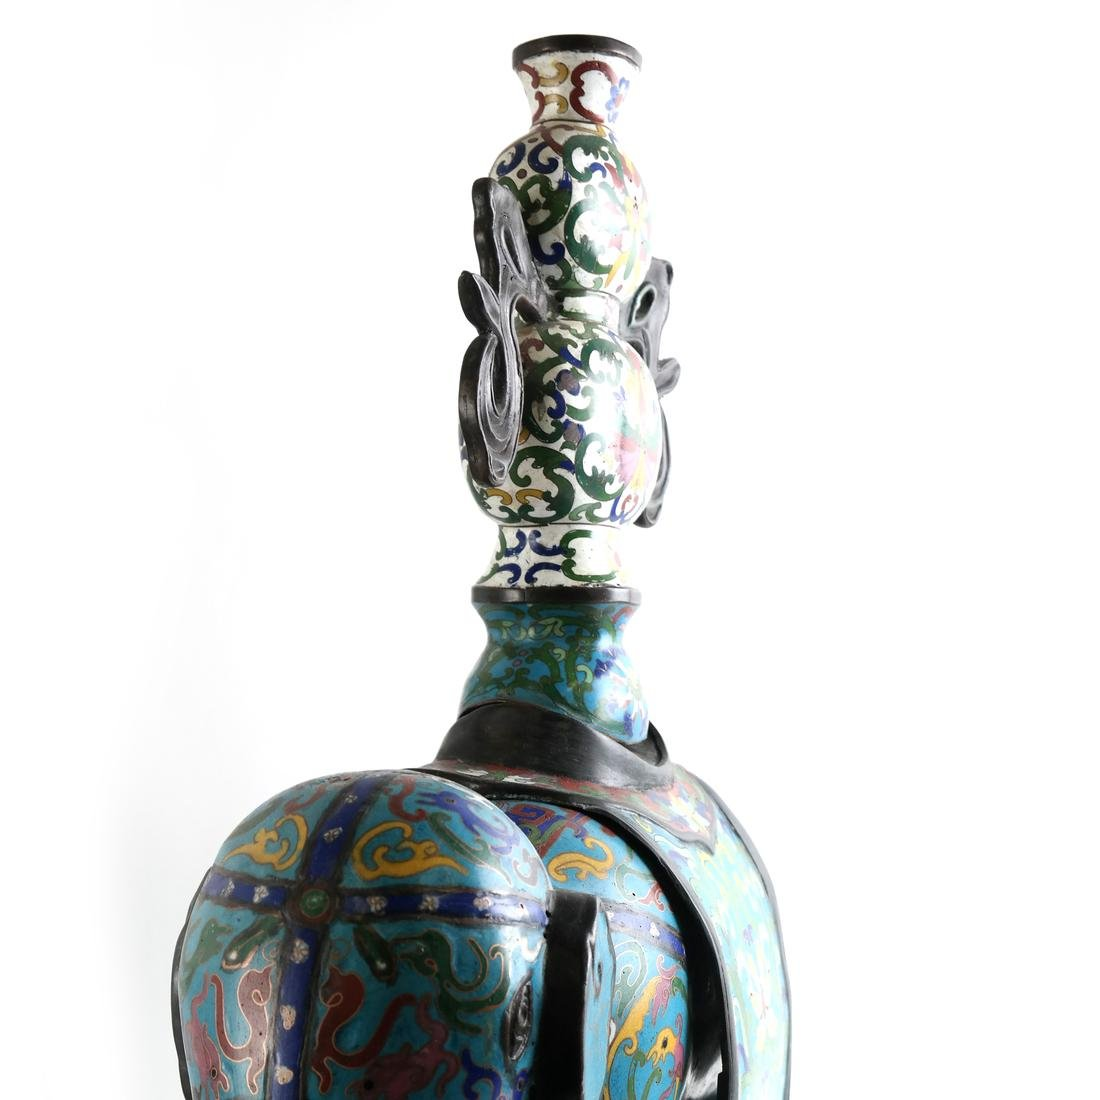 Pr Chinese Cloisonne Elephants with Vase - 8